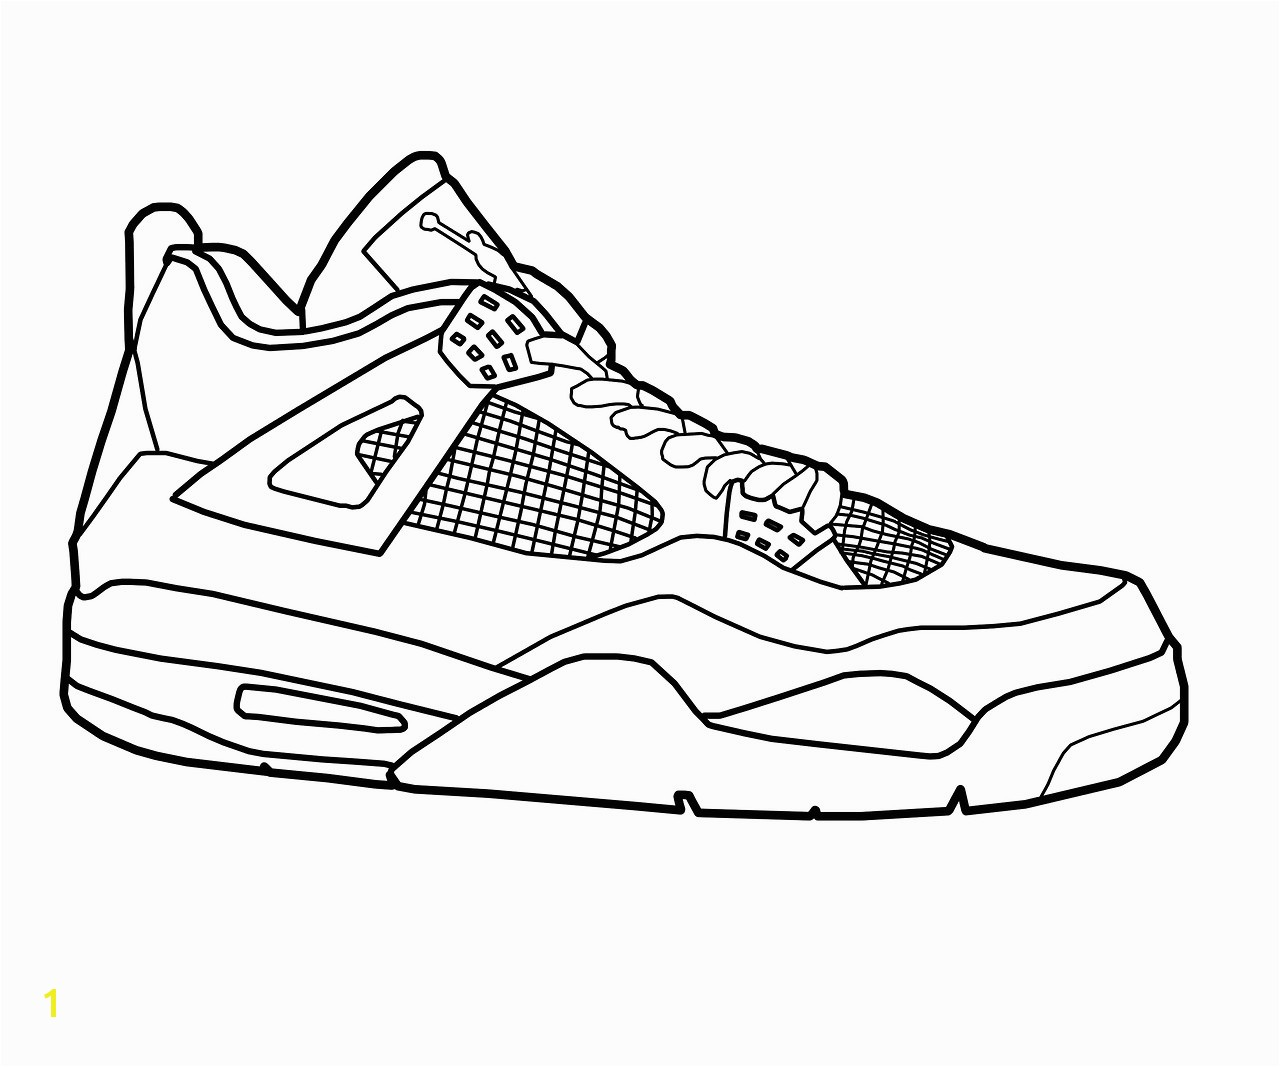 Wooden Shoe Coloring Page Inspirational Easily Shoe Coloring Page Popular Printable Tennis Pages Beautiful Pics